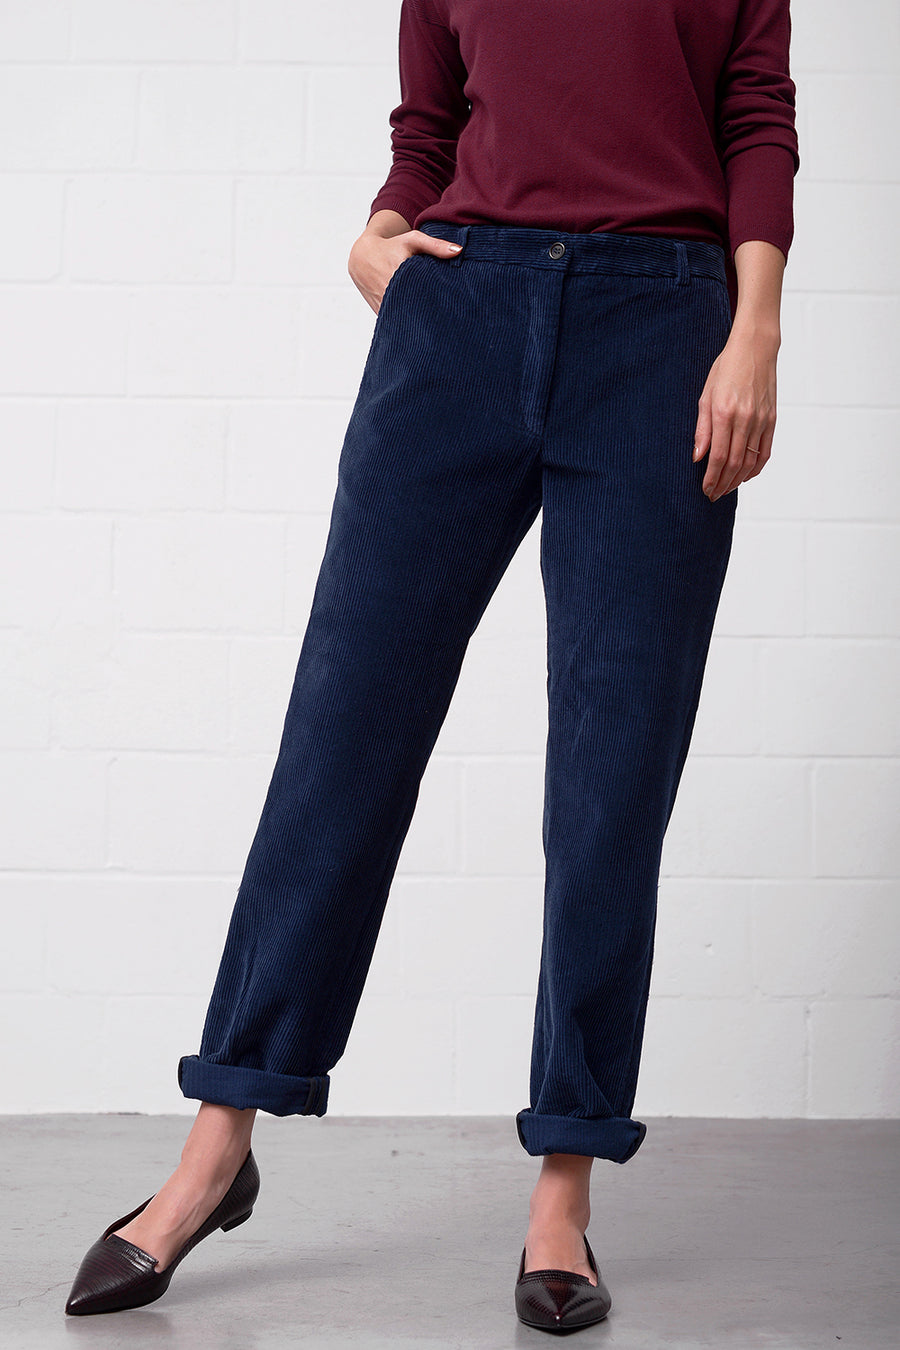 Peria Pants - bluegrey